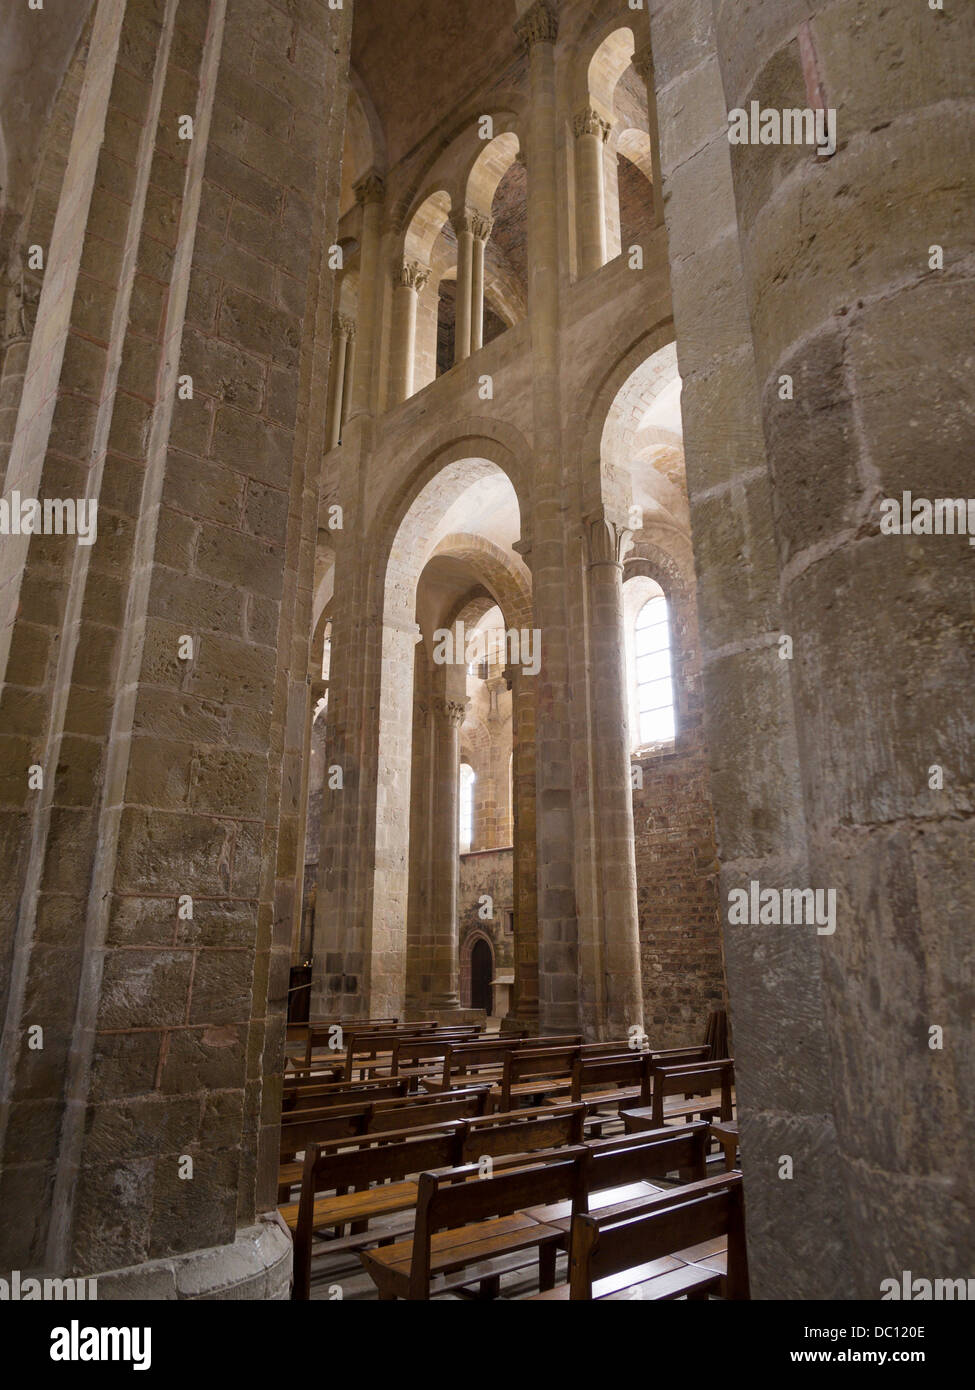 The austere interior of the Church of Saint Foy . Columns soar and the plain stonework glows in this image of St. - Stock Image